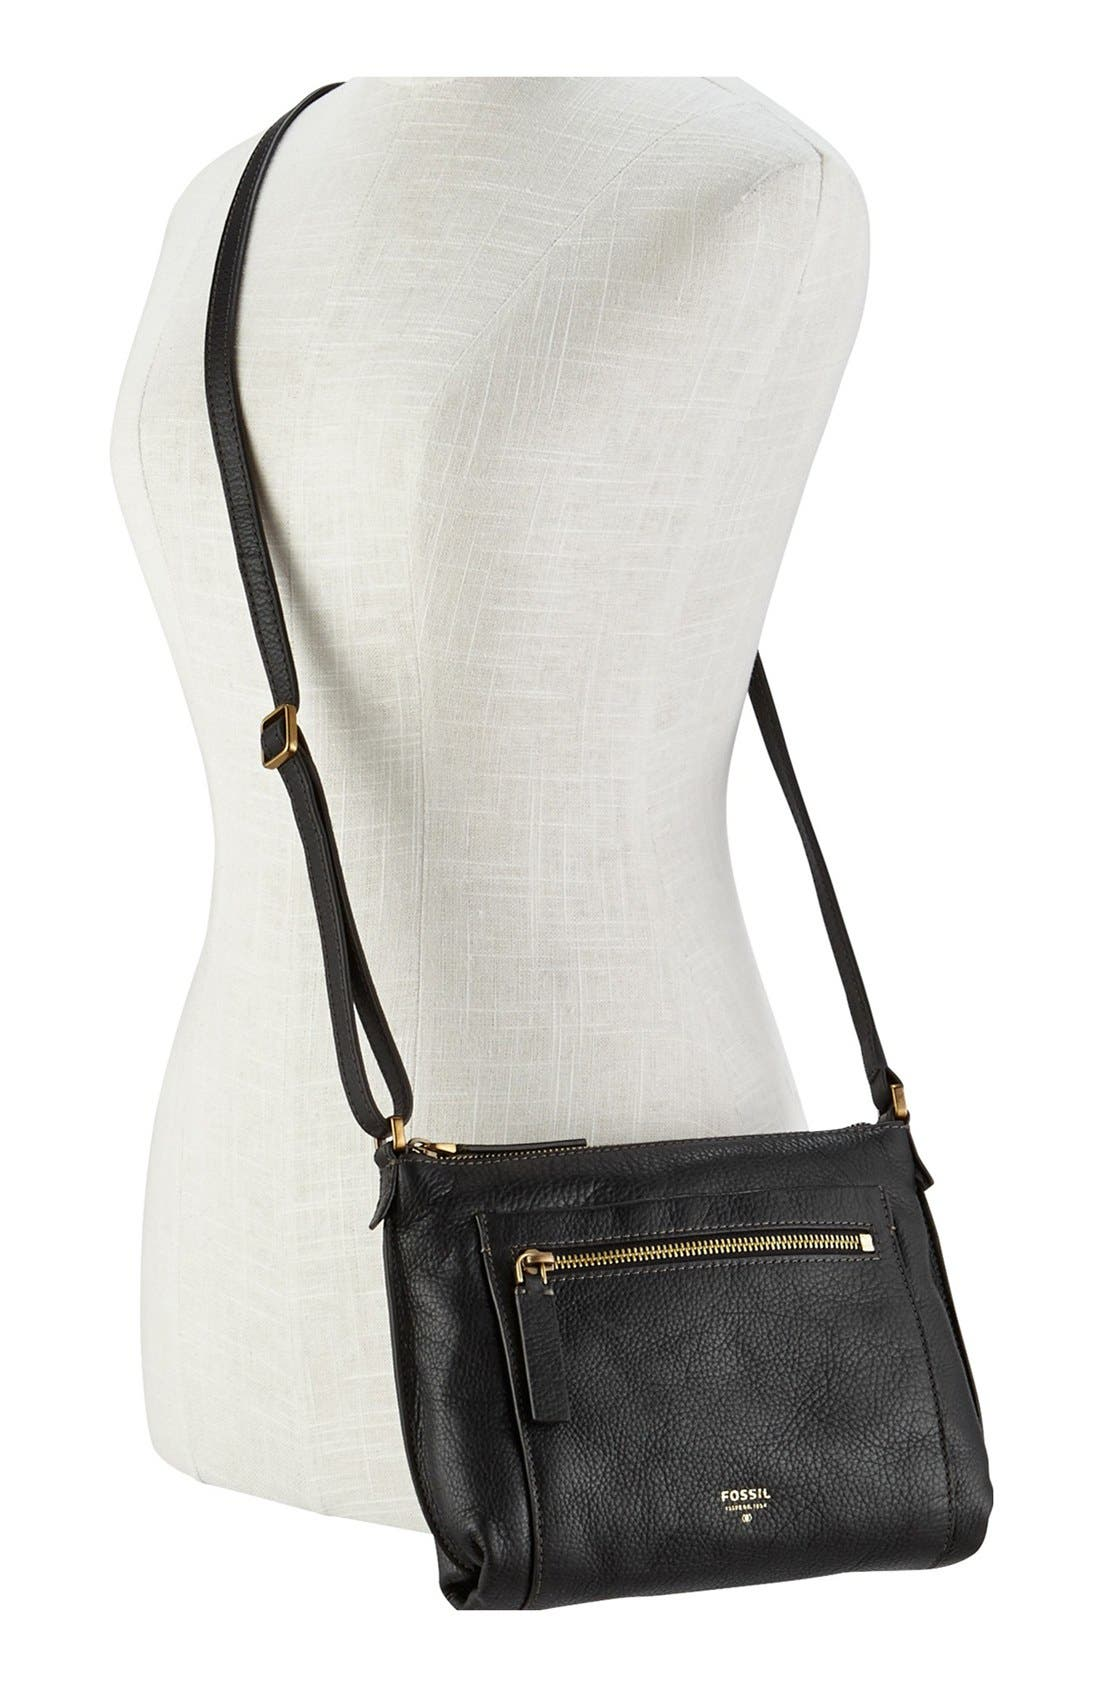 'Vickery' Leather Crossbody Bag,                             Alternate thumbnail 2, color,                             001